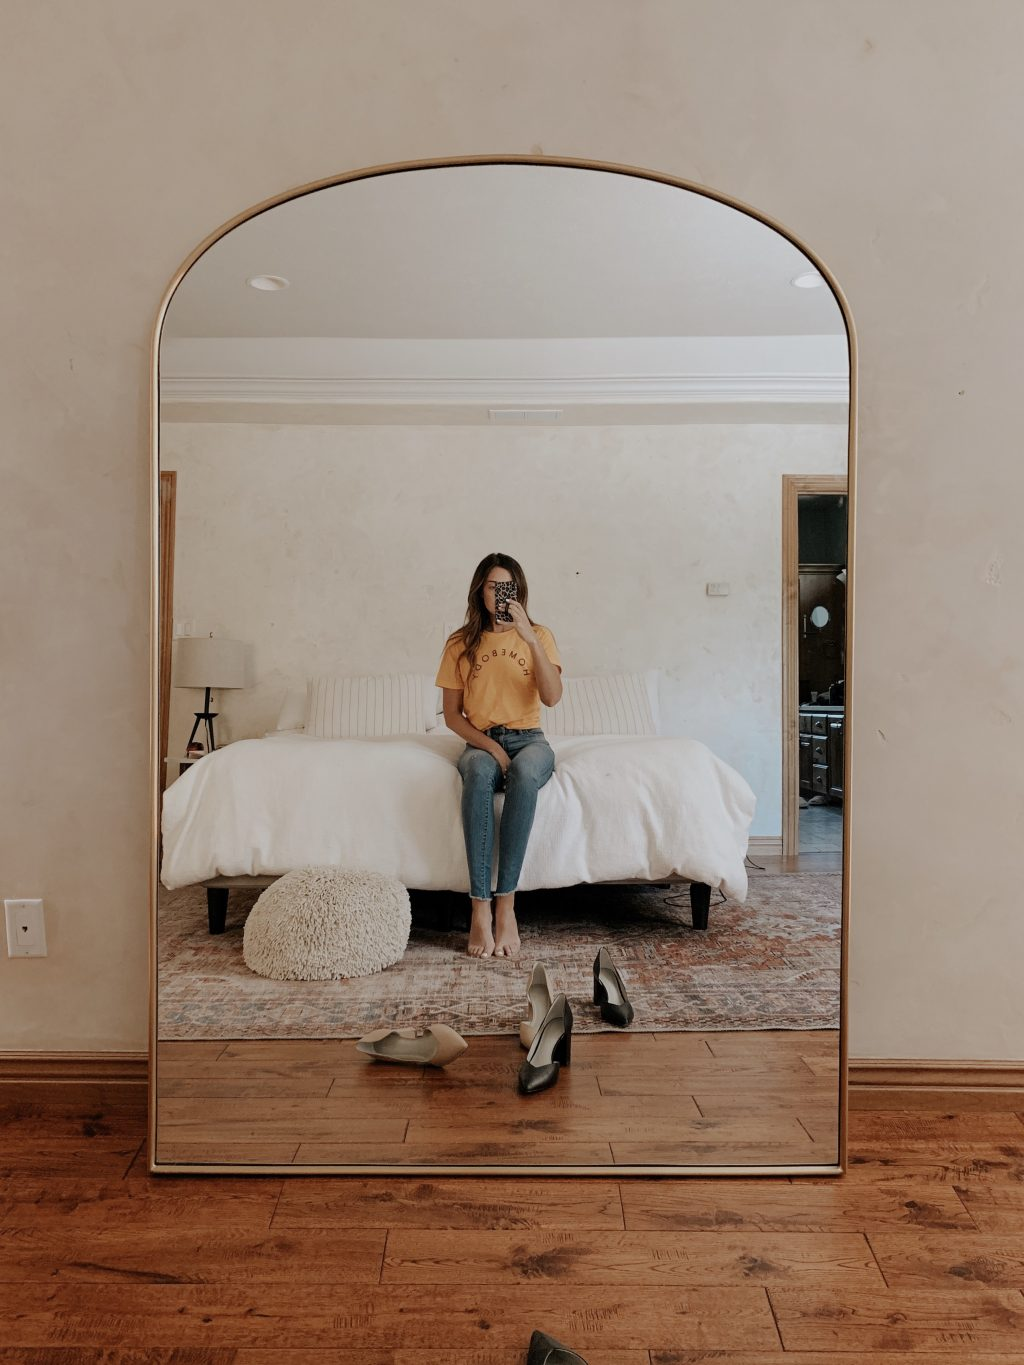 Casual Friday Arched Mirror New Beds For Greta S Room What I Actually Bought From The Nordstrom Sale Demo Begins Our Favorite Games And More Chris Loves Julia